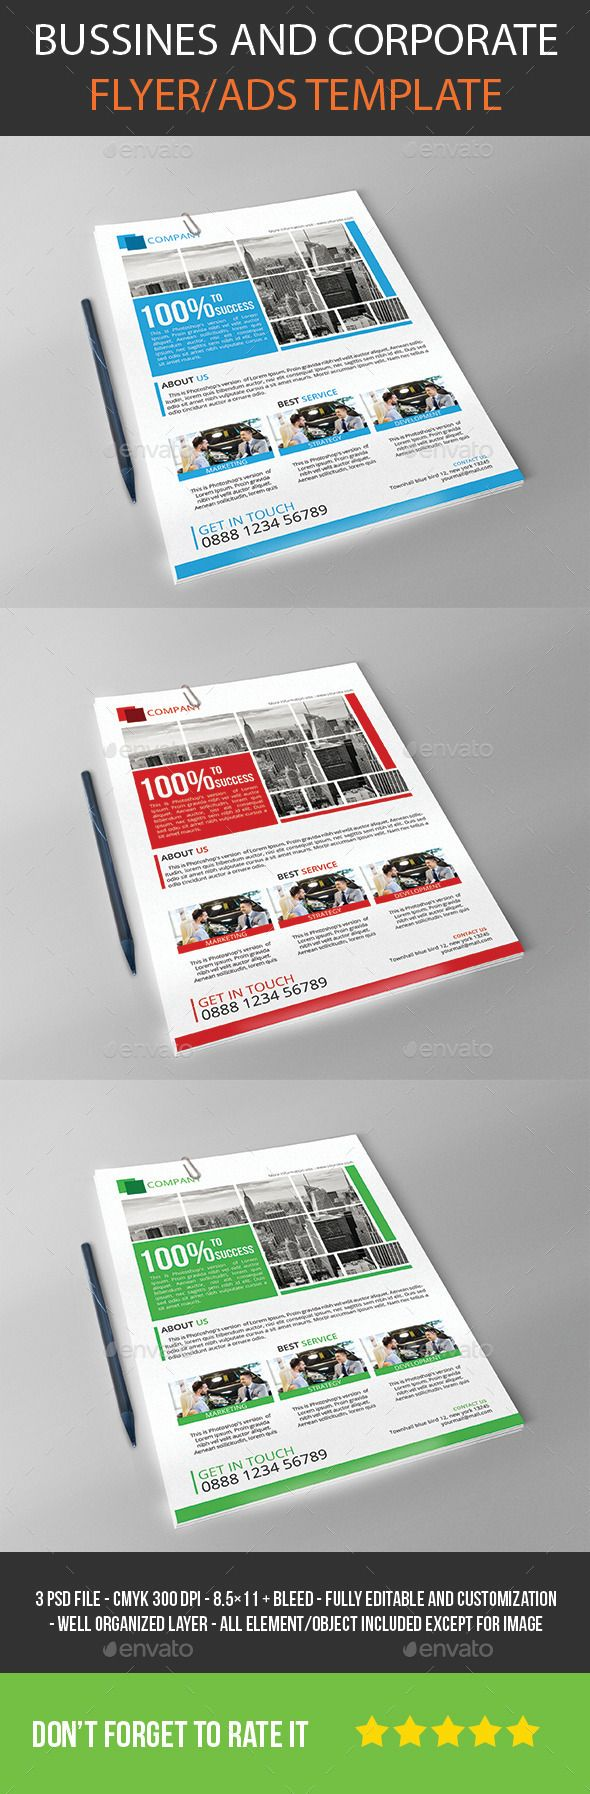 15 best flyer design images on Pinterest | Flyer design, Flyer ...